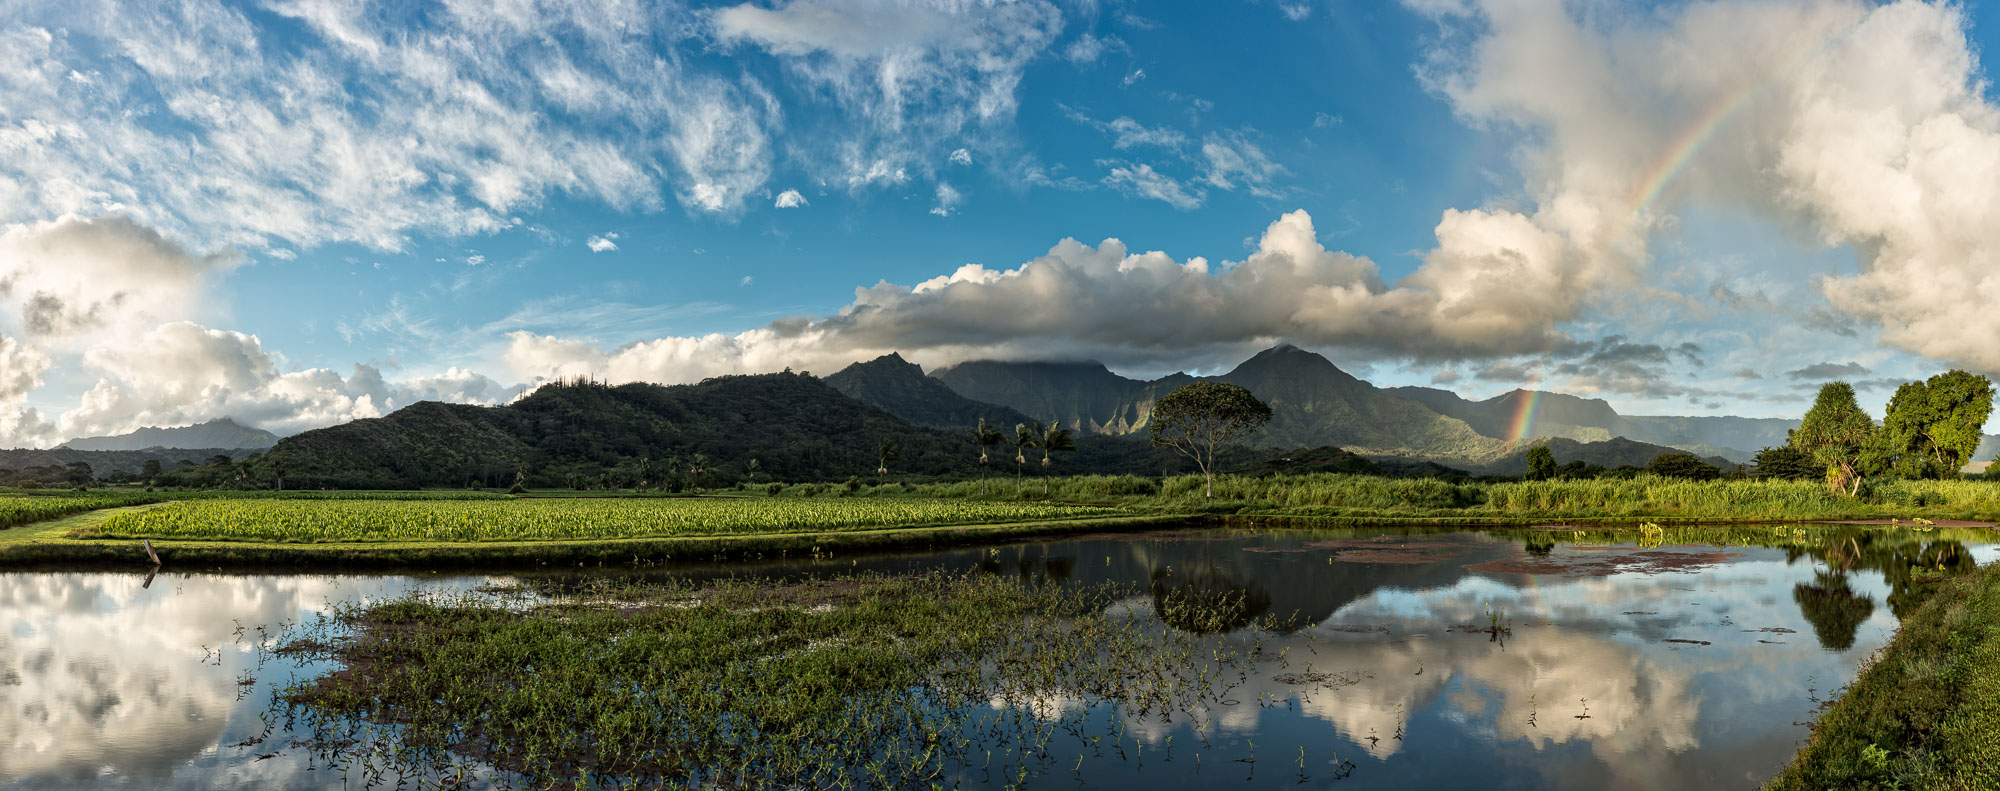 Hanalei Valley, Kauai  (Panoramic Merger: Nikon D800)